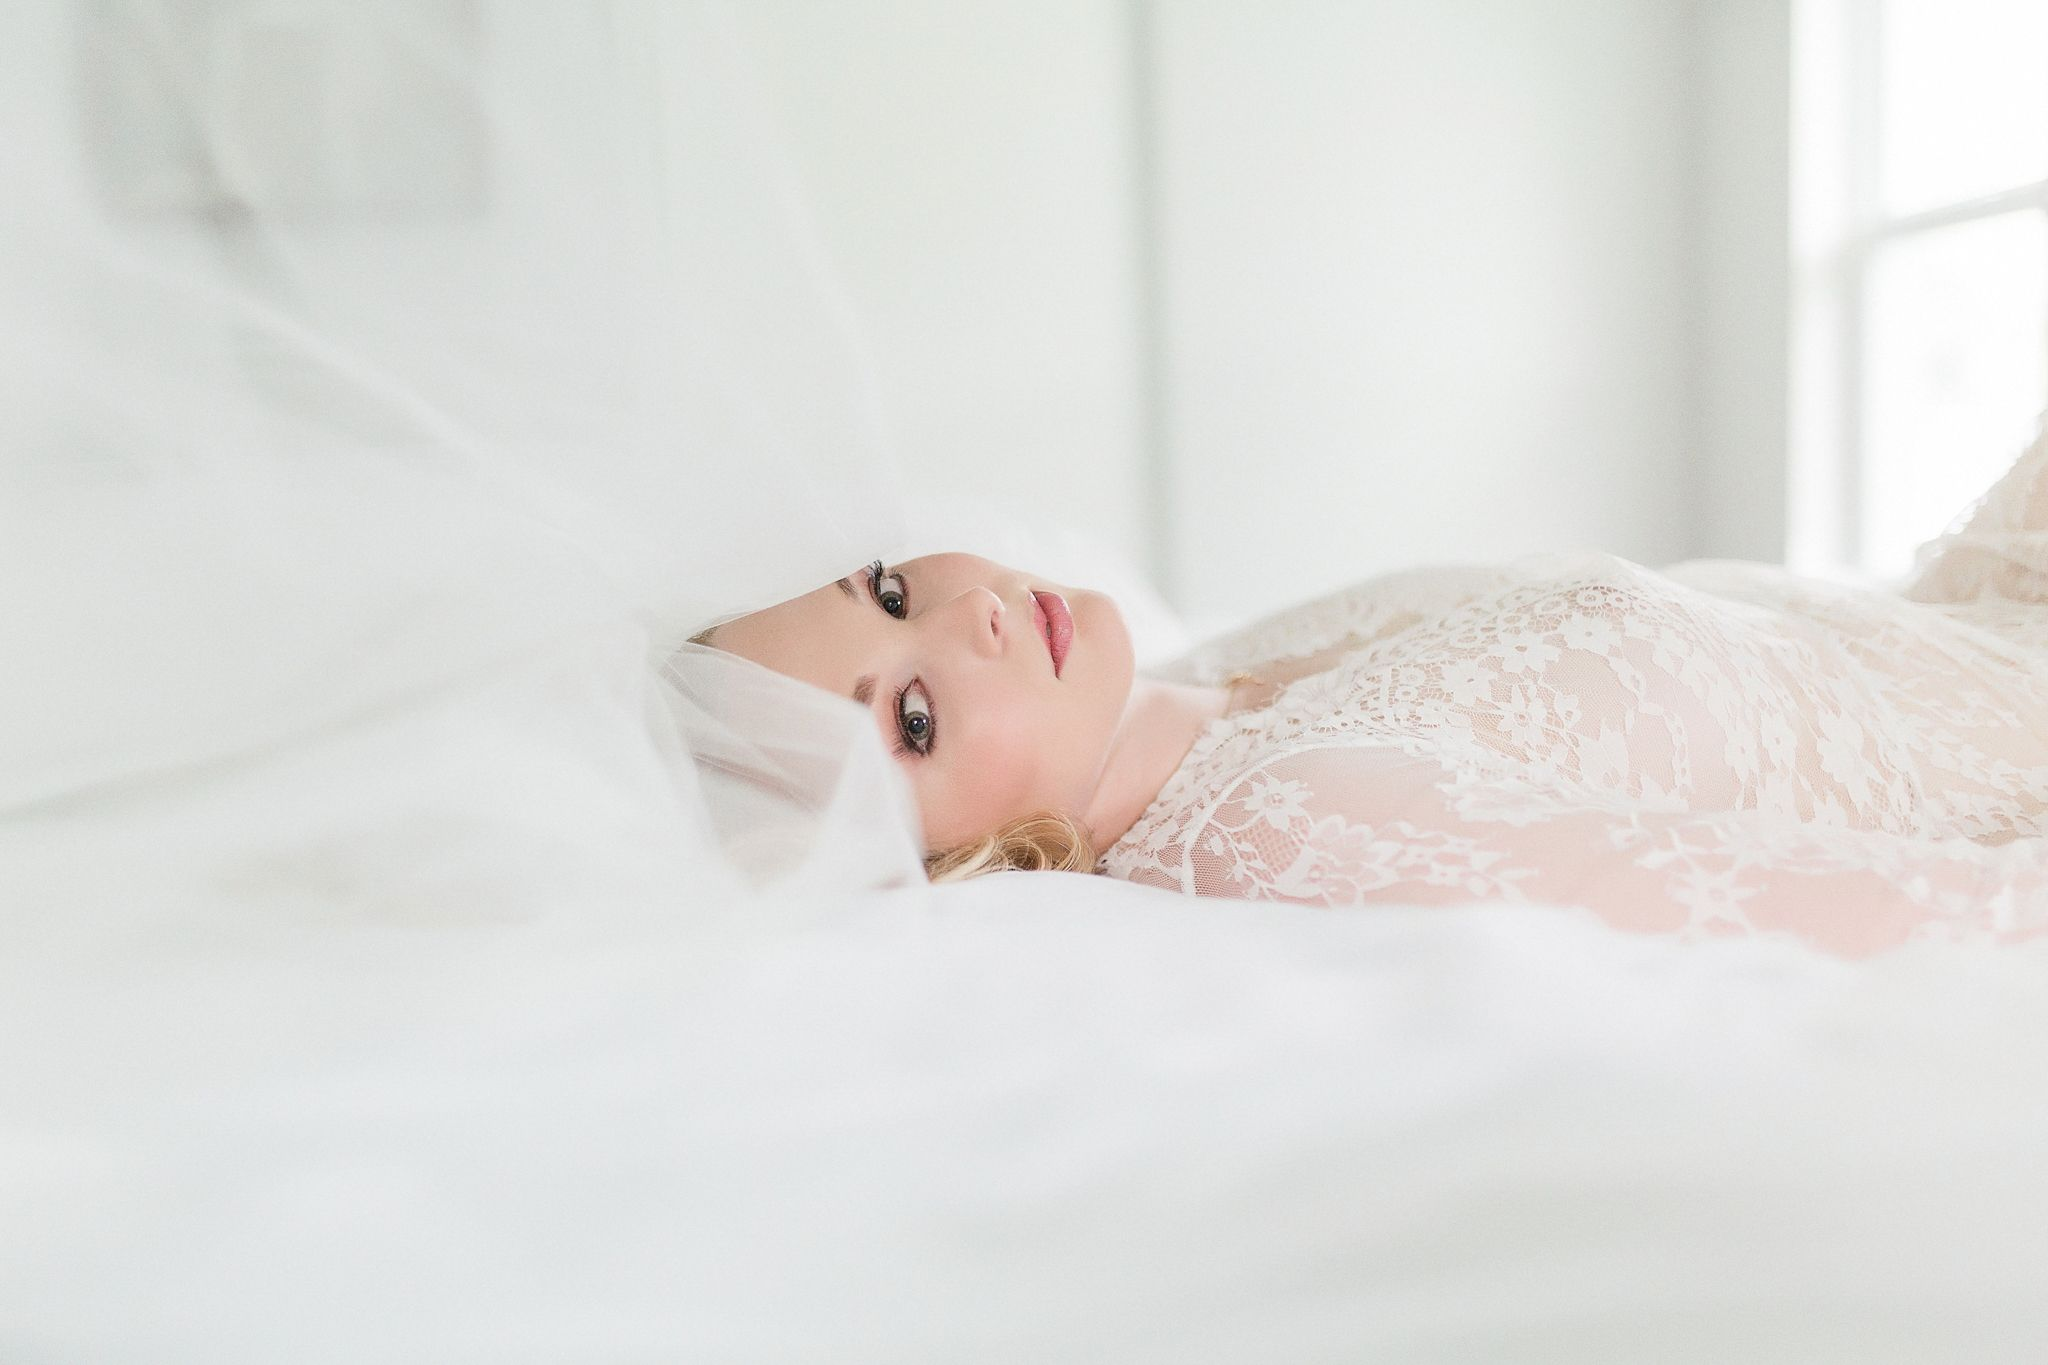 sarasota bridal boudoir photographer